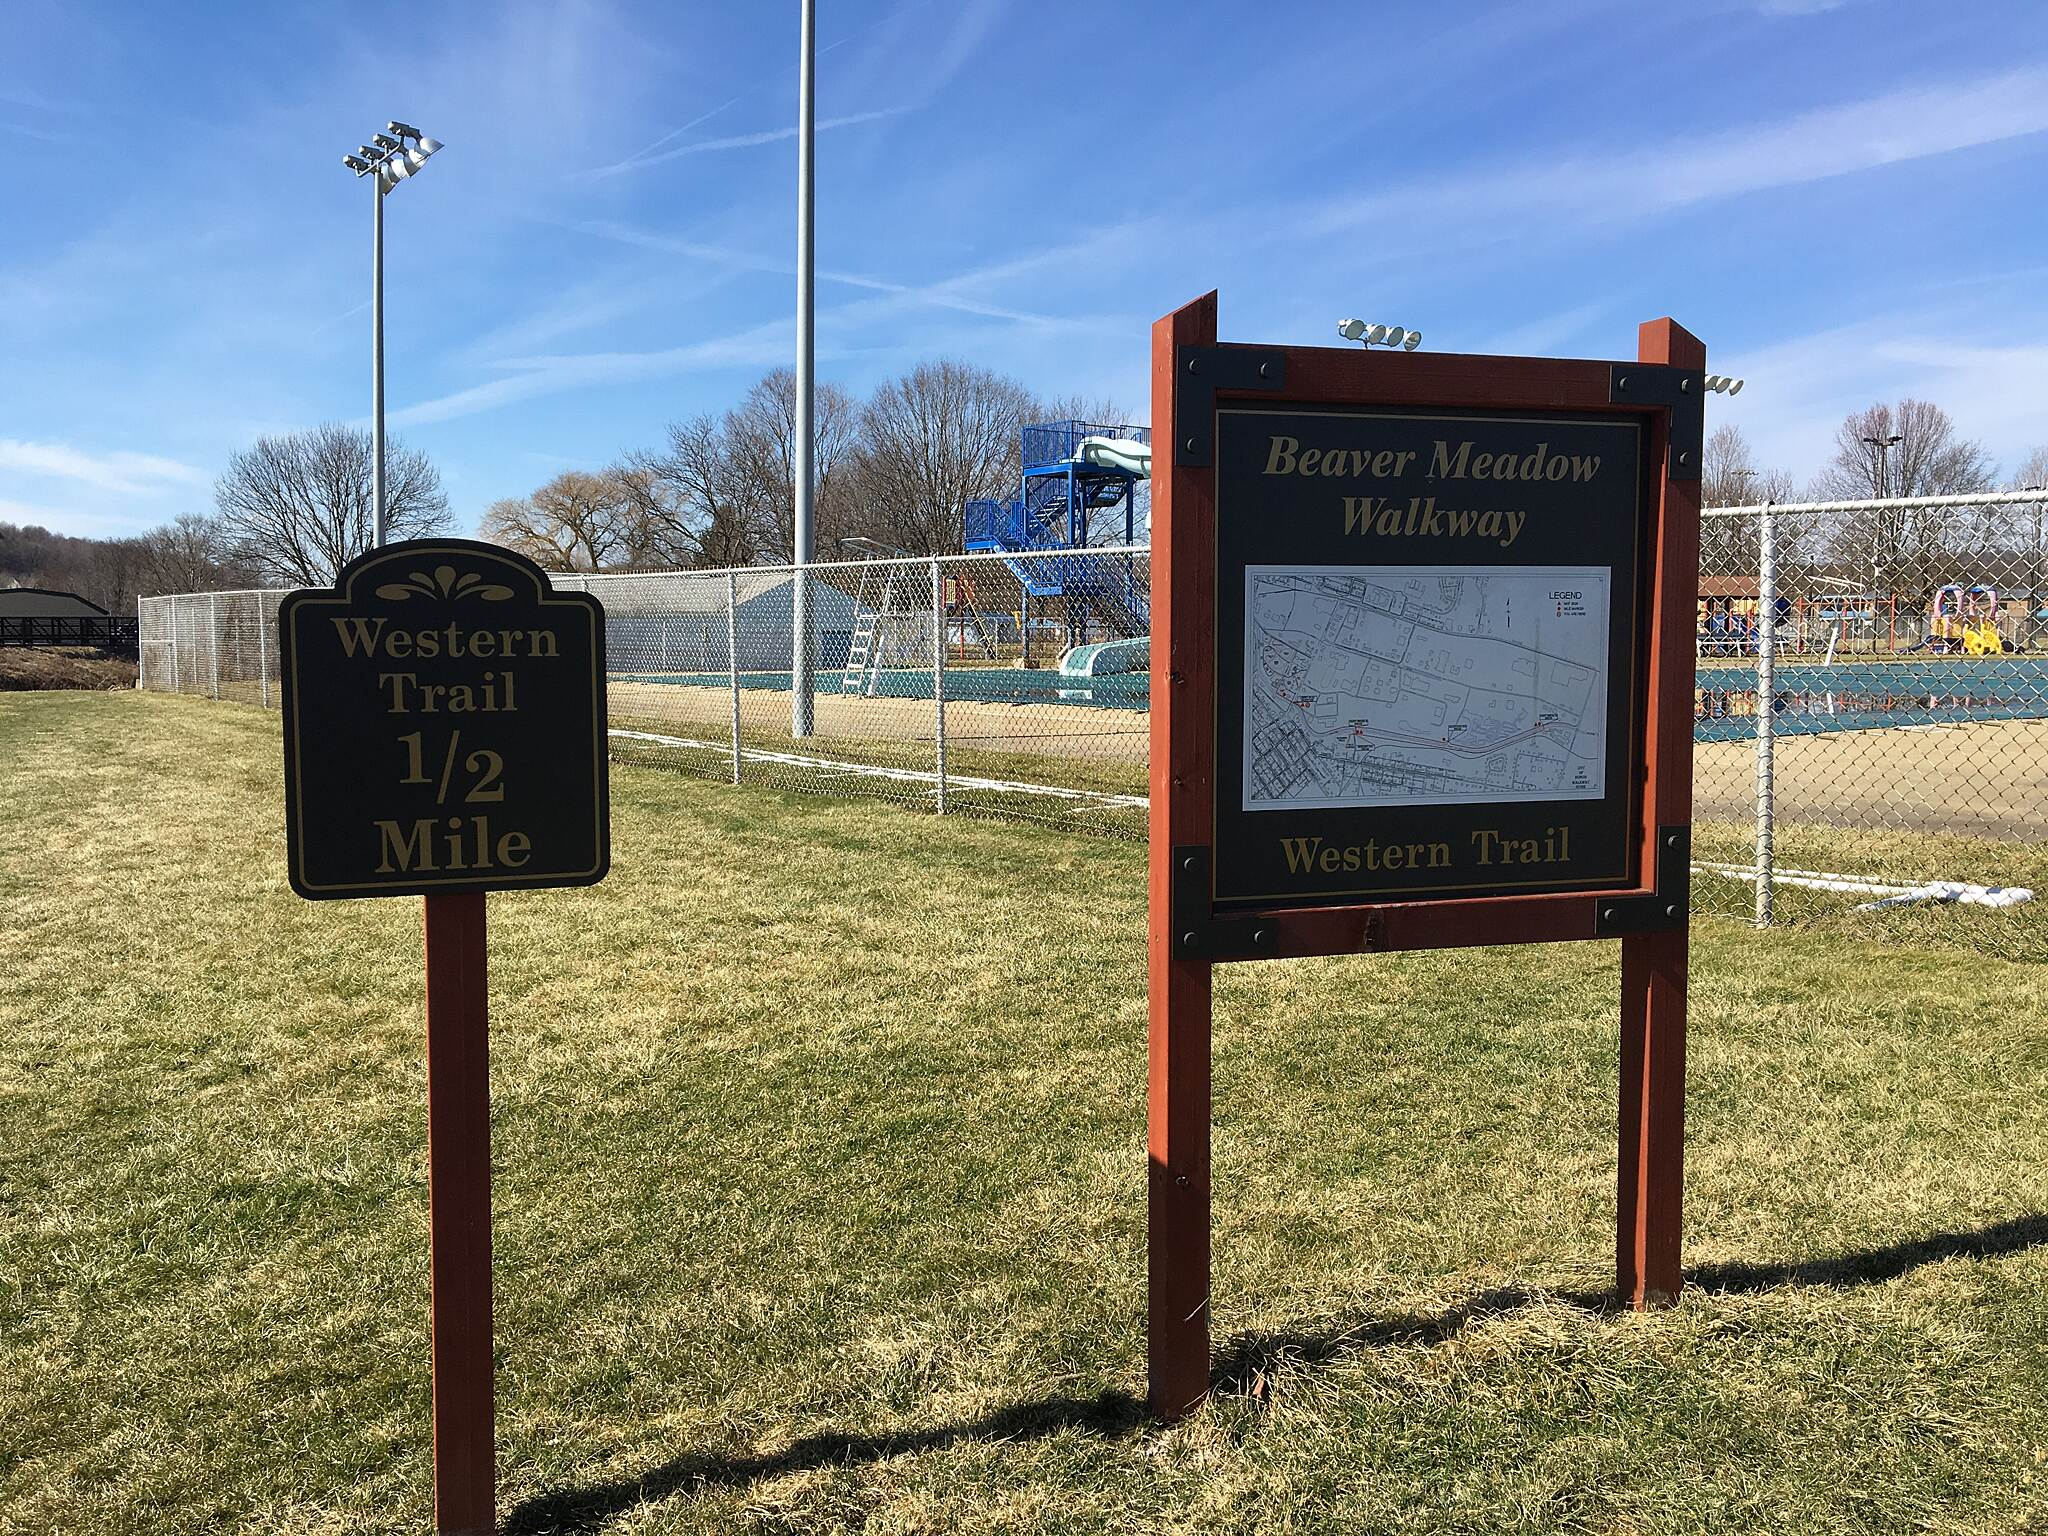 Beaver Meadow Trail Mile marker for Western Trail Trail ends/begins at City Park